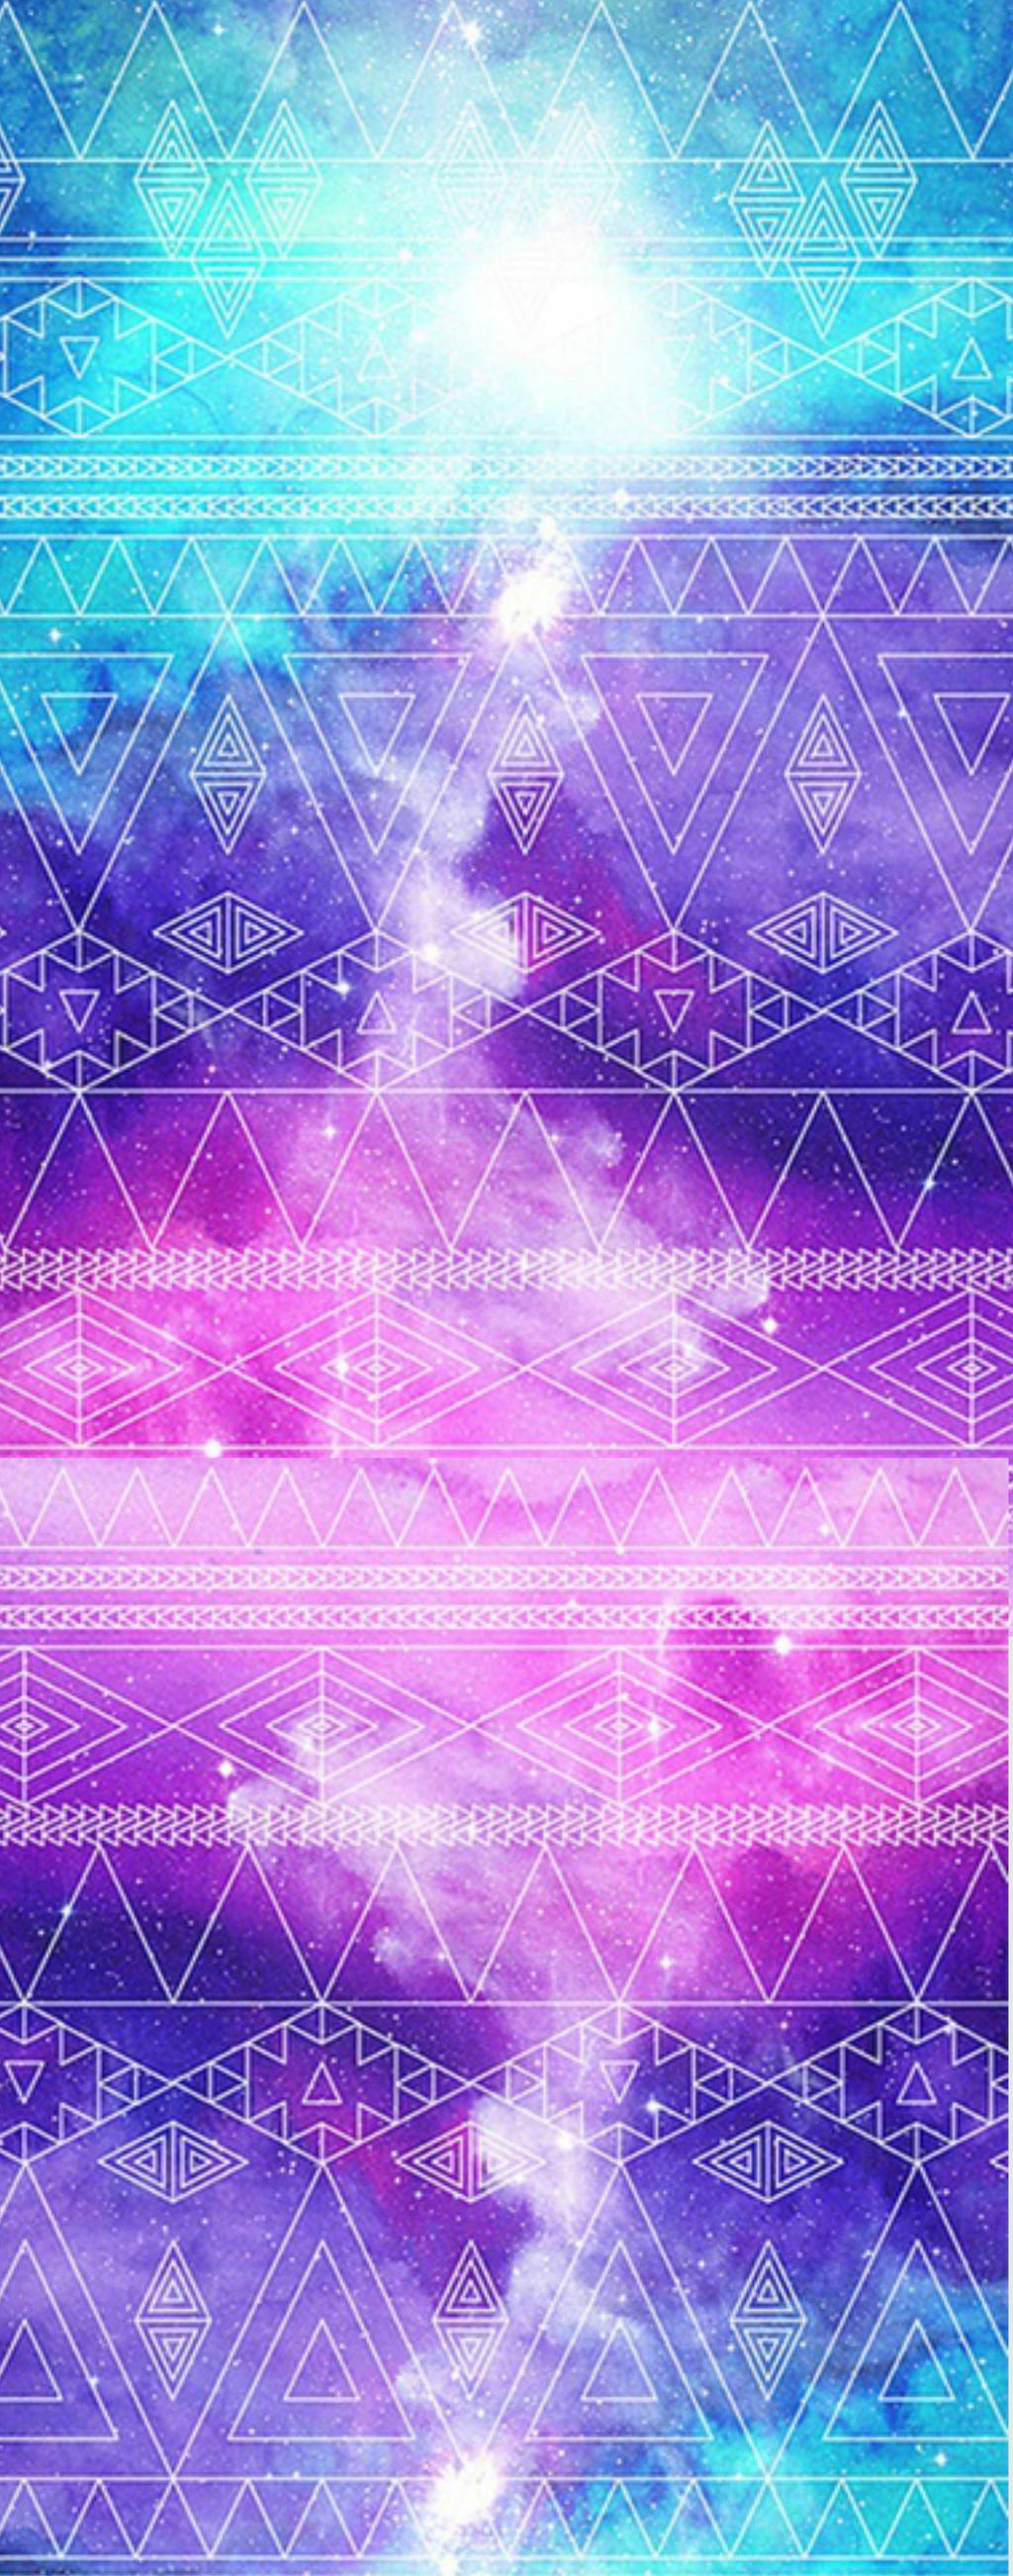 Image Result For Free To Use Custom Box Galaxy Aztec Background By Lizzywolffire